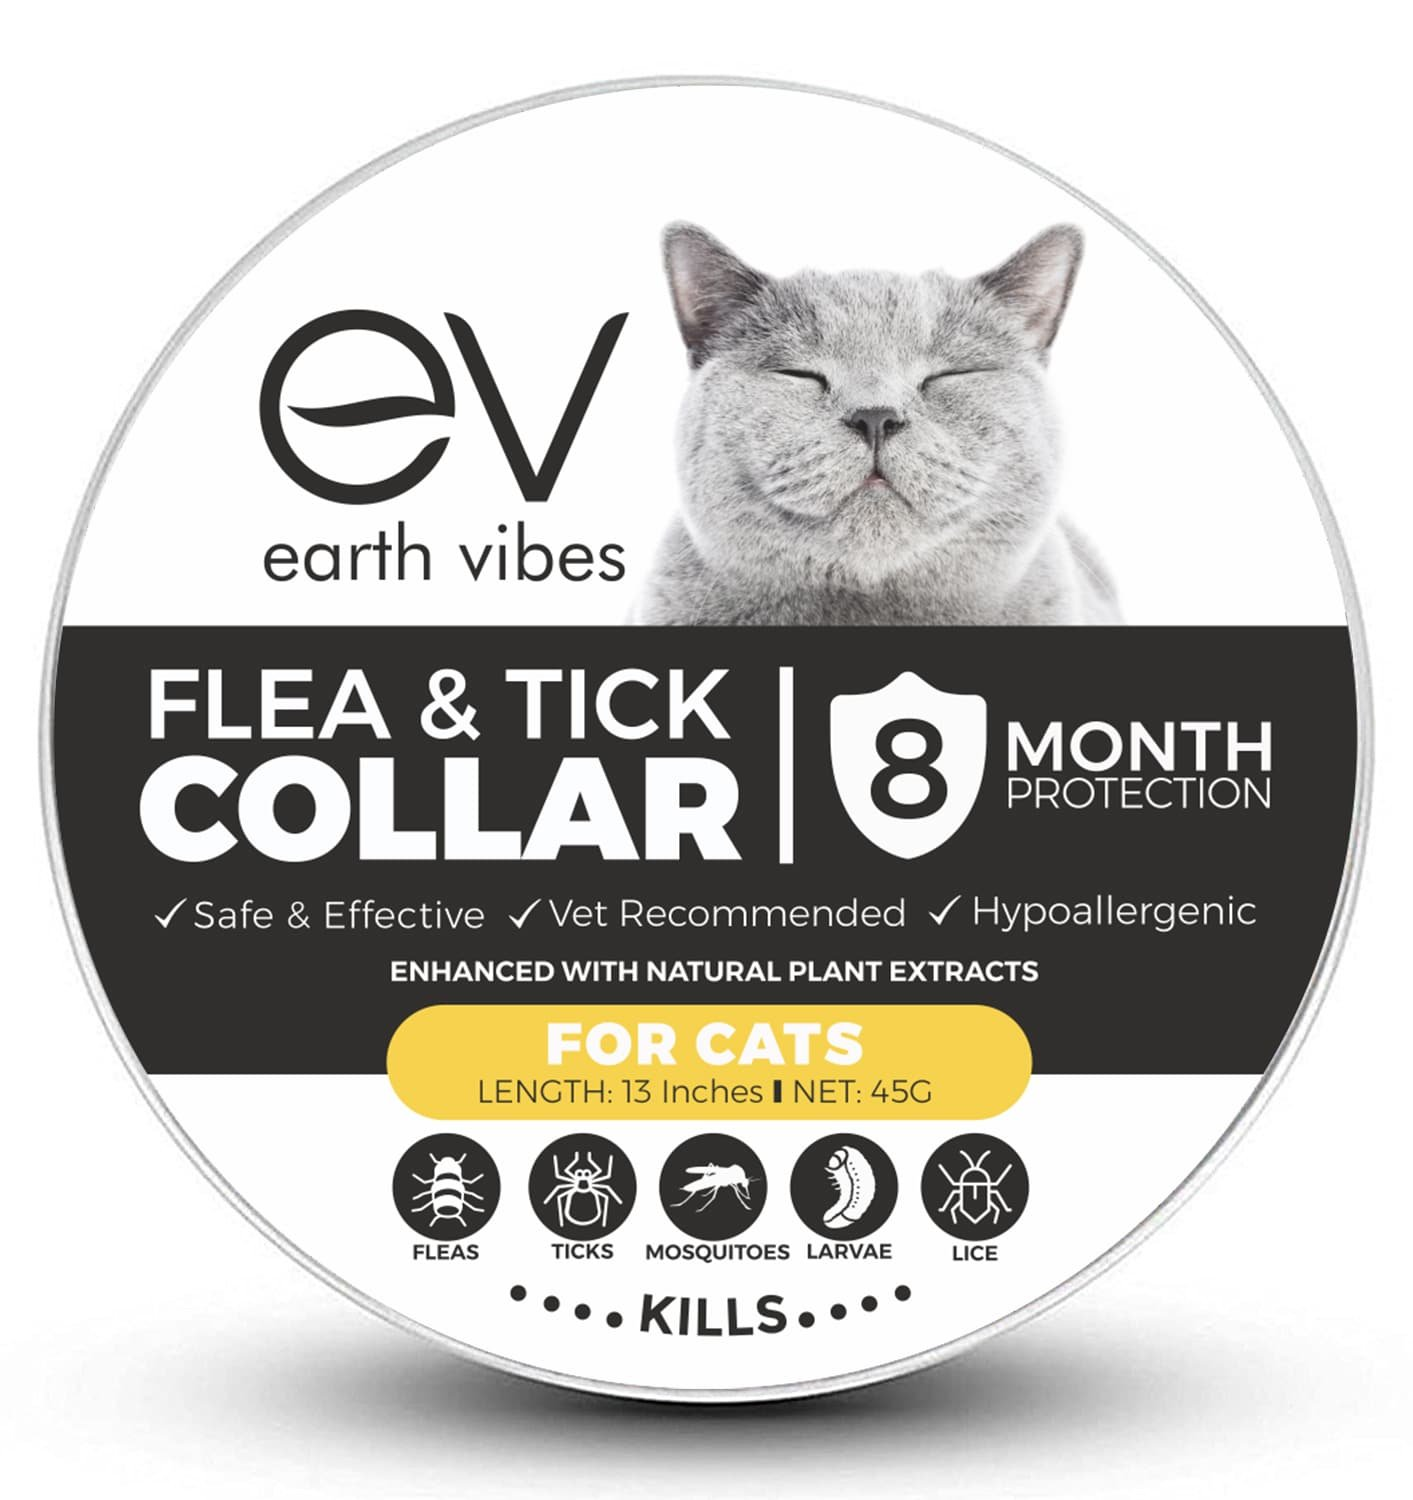 Earth Vibes Flea And Tick Collar For Cats - Vet Recommended Hypoallergenic Waterproof Natural 8 Month Protection & Prevention From Fleas Ticks Mosquitos Larvae Lice Treatment